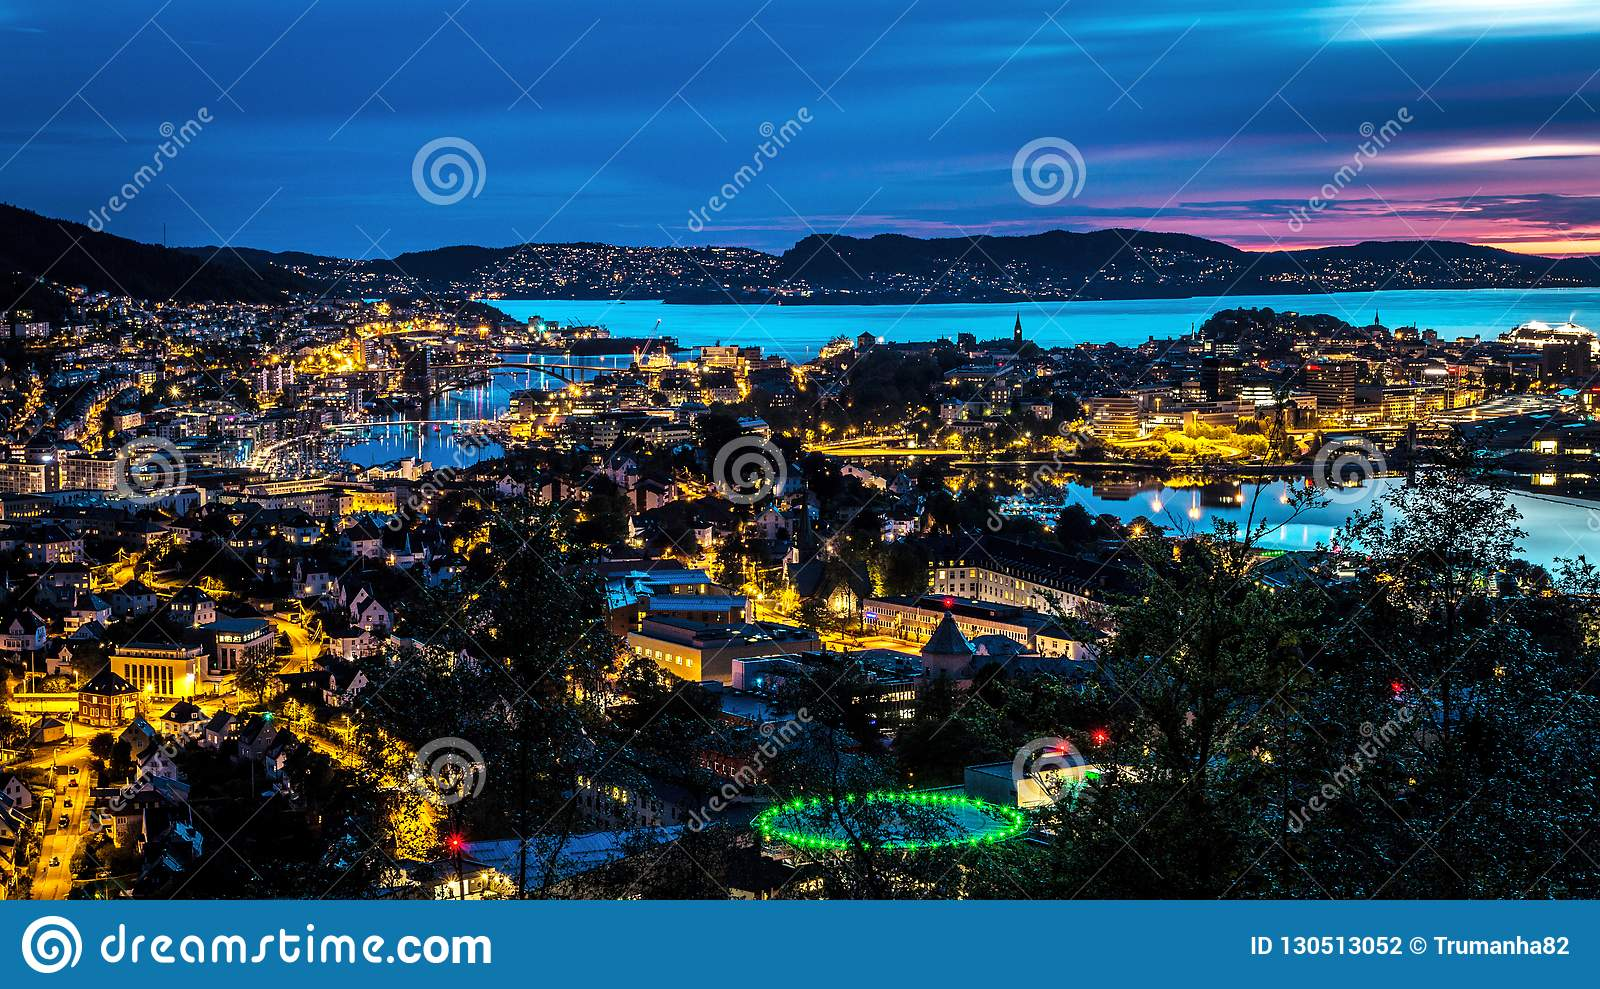 City Scene with Aerial View of Bergen Center at Night